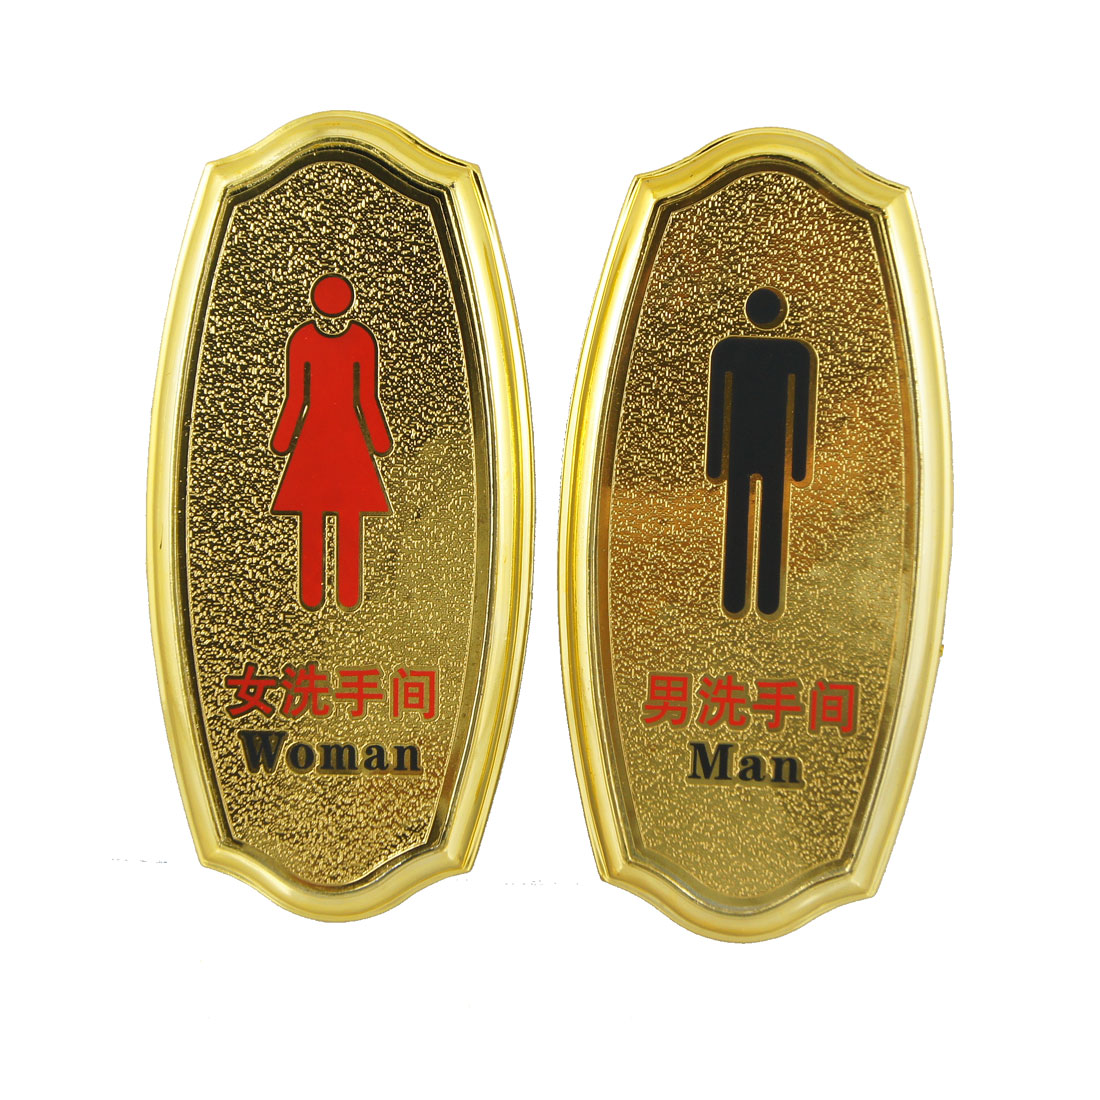 2 in 1 Man Woman Plastic Washroom Toilet Notice Sign Board Gold Tone